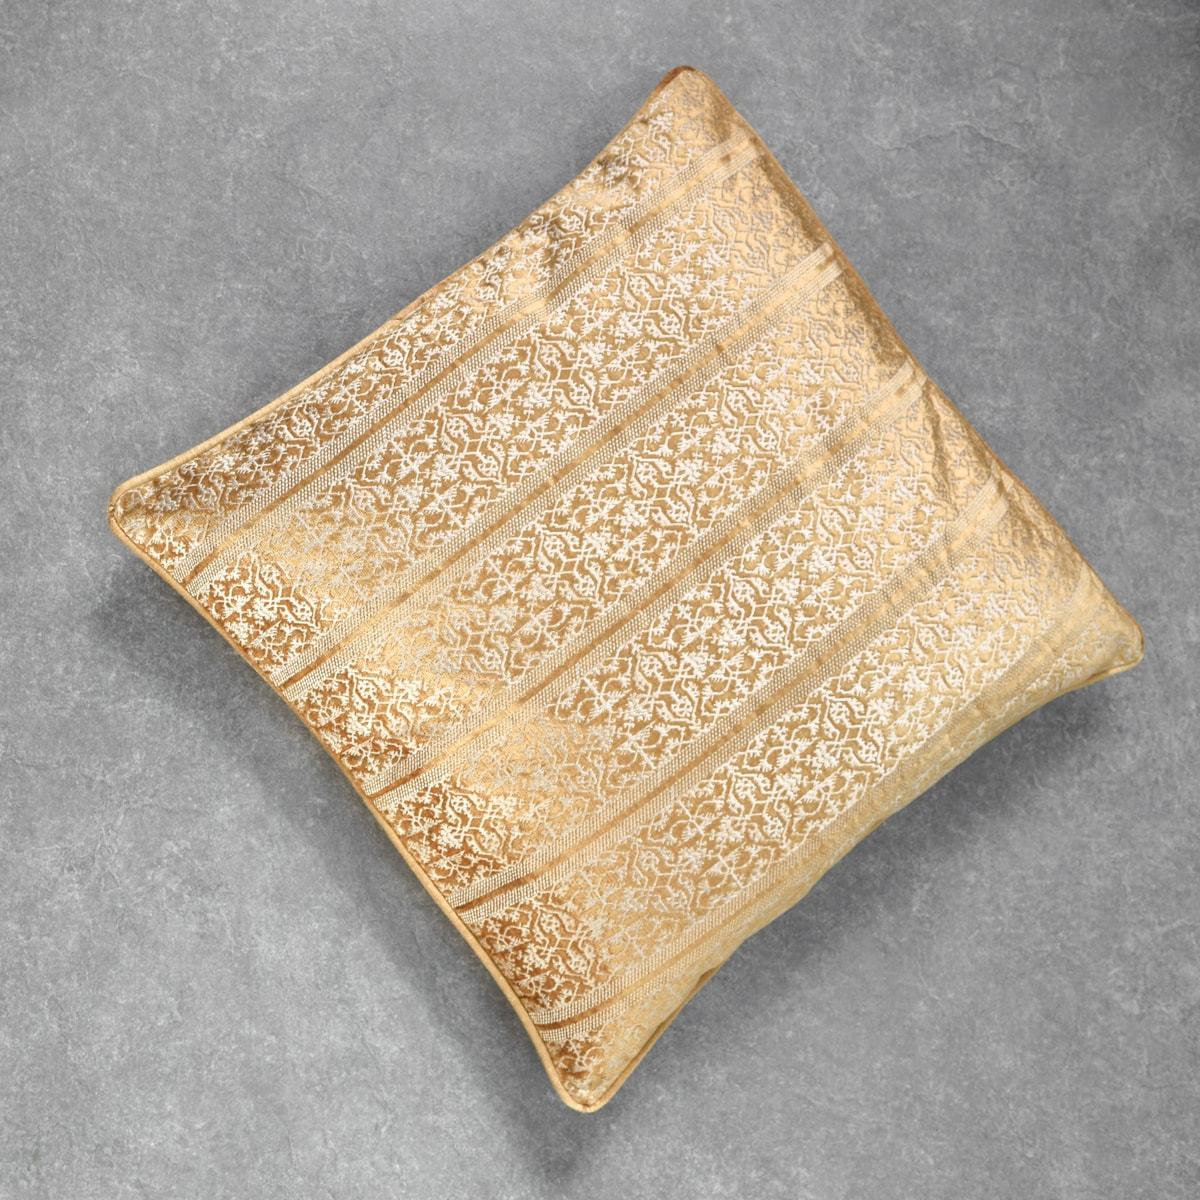 Ara Gold Embroidered Cushion Cover by Valaya Home for Tapestry  - Home Artisan